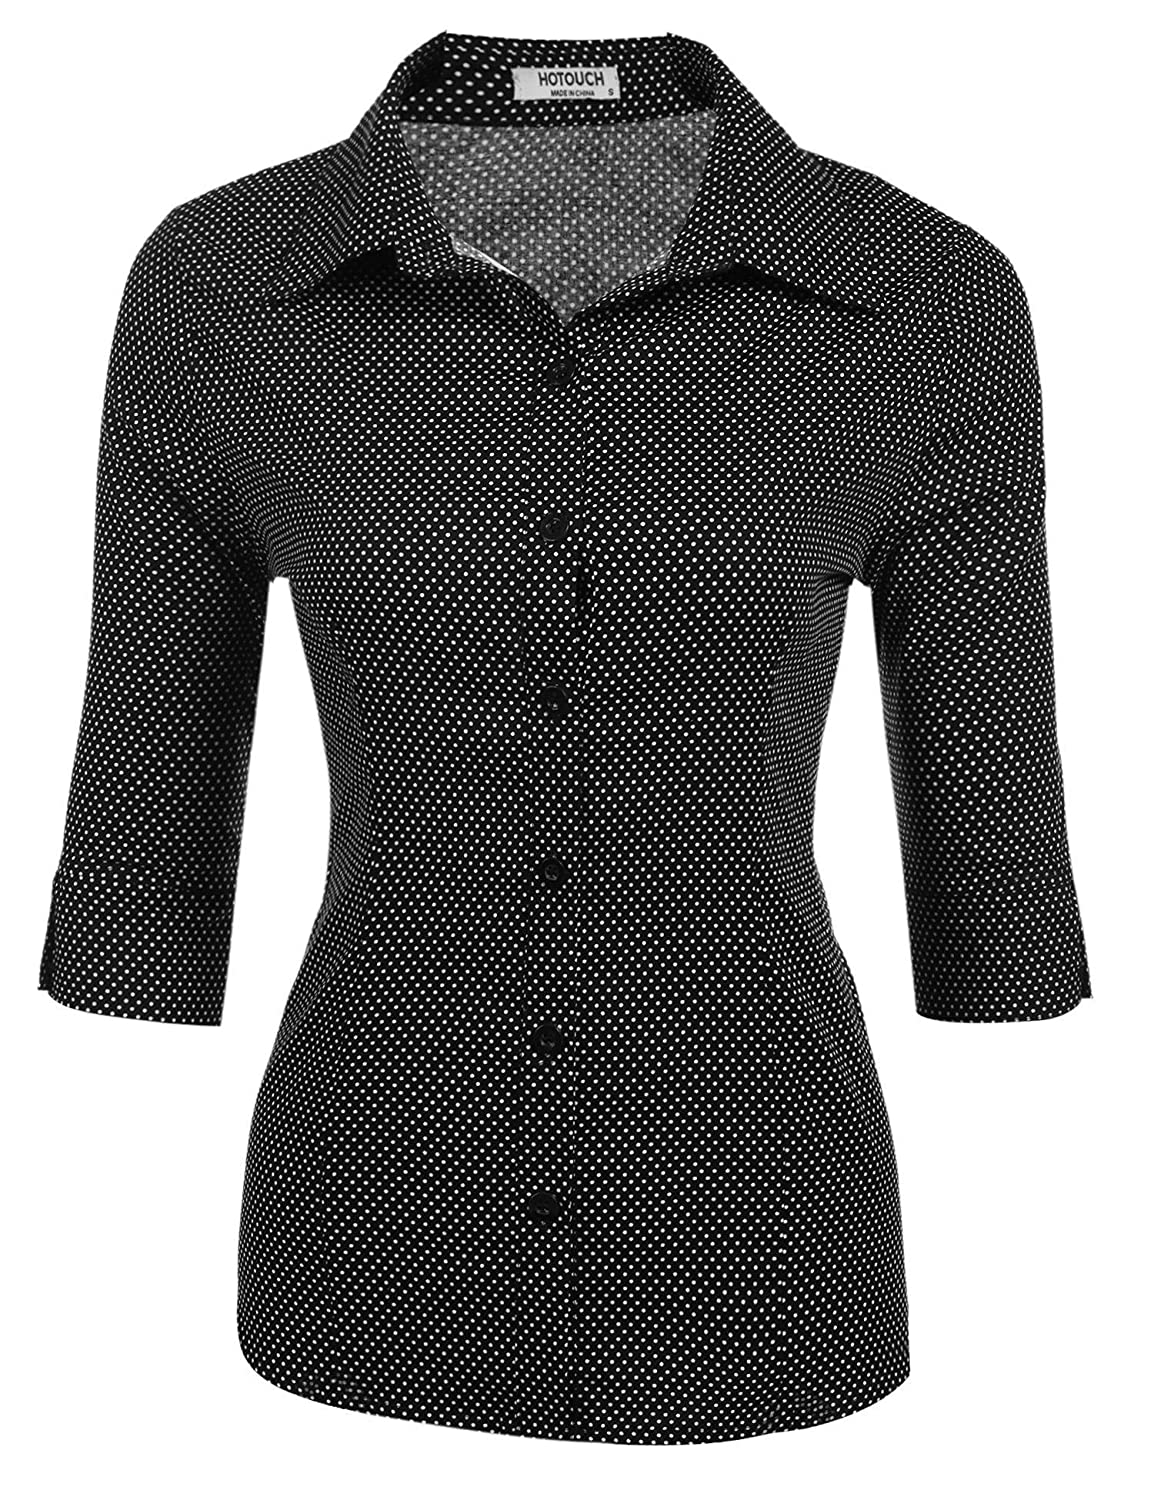 Black Polka Dot HOTOUCH Womens Long Sleeve Button Down Shirt with Stretch